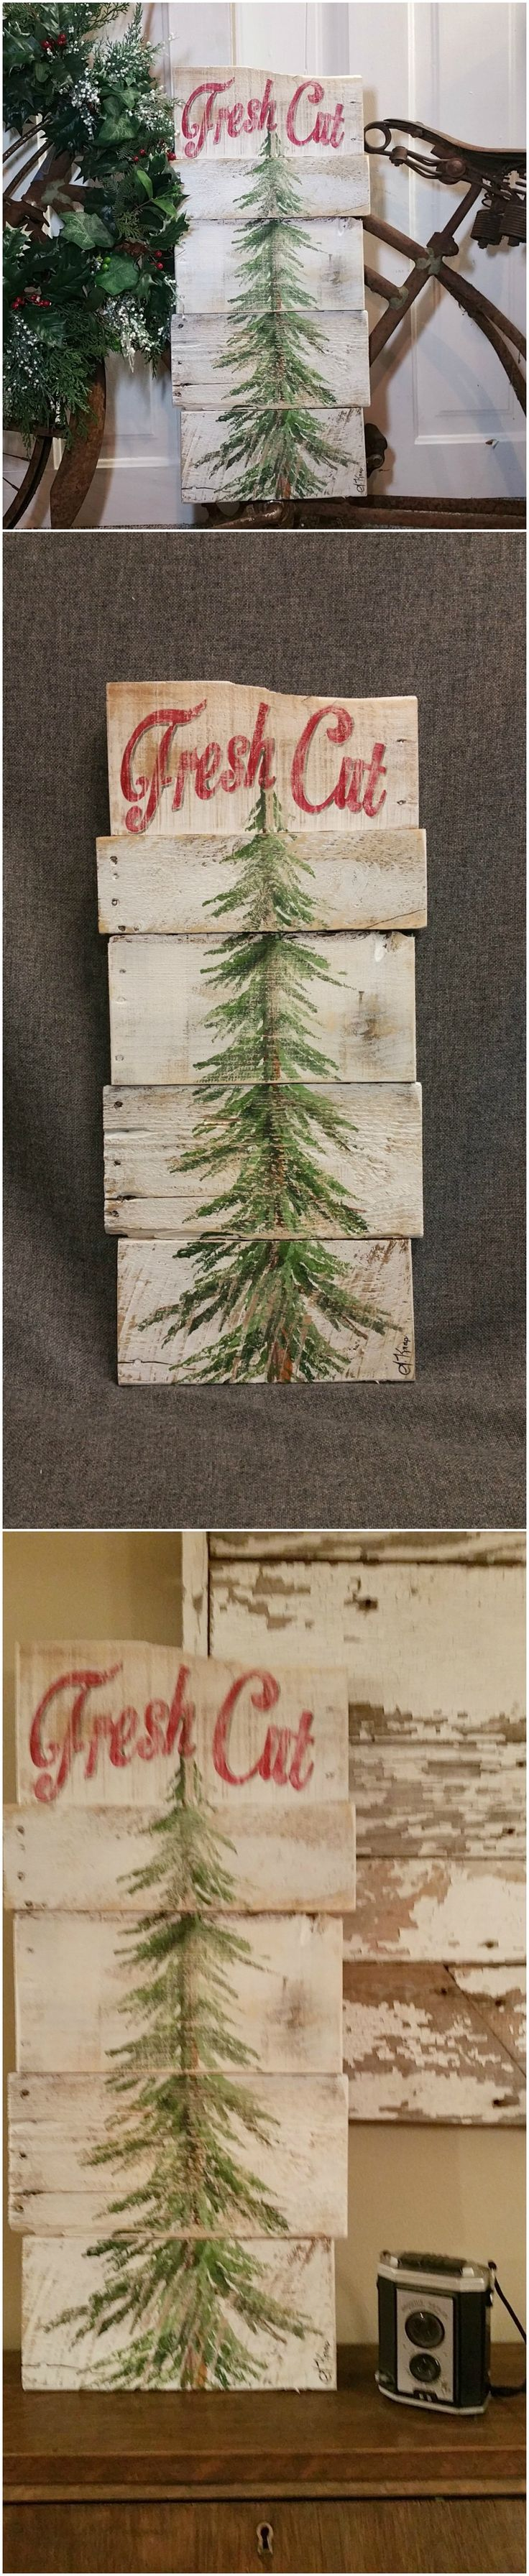 "Christmas tree for sale, white washed, Fresh Cut, Pine tree Reclaimed Pallet Art, christmas Hand painted, Shabbt chic, Distressed  Original Acrylic painting on reclaimed Pallet boards. This unique piece is 24"" x apprx. 12""  This heavily aged Christmas tree sign is on a white-washed background with the words ""Fresh Cut"" painted in red across the top. It is perfect for a personalized rustic touch to your Christmas decorating. Perfect for that skinny wall space or just lean it against the wall."